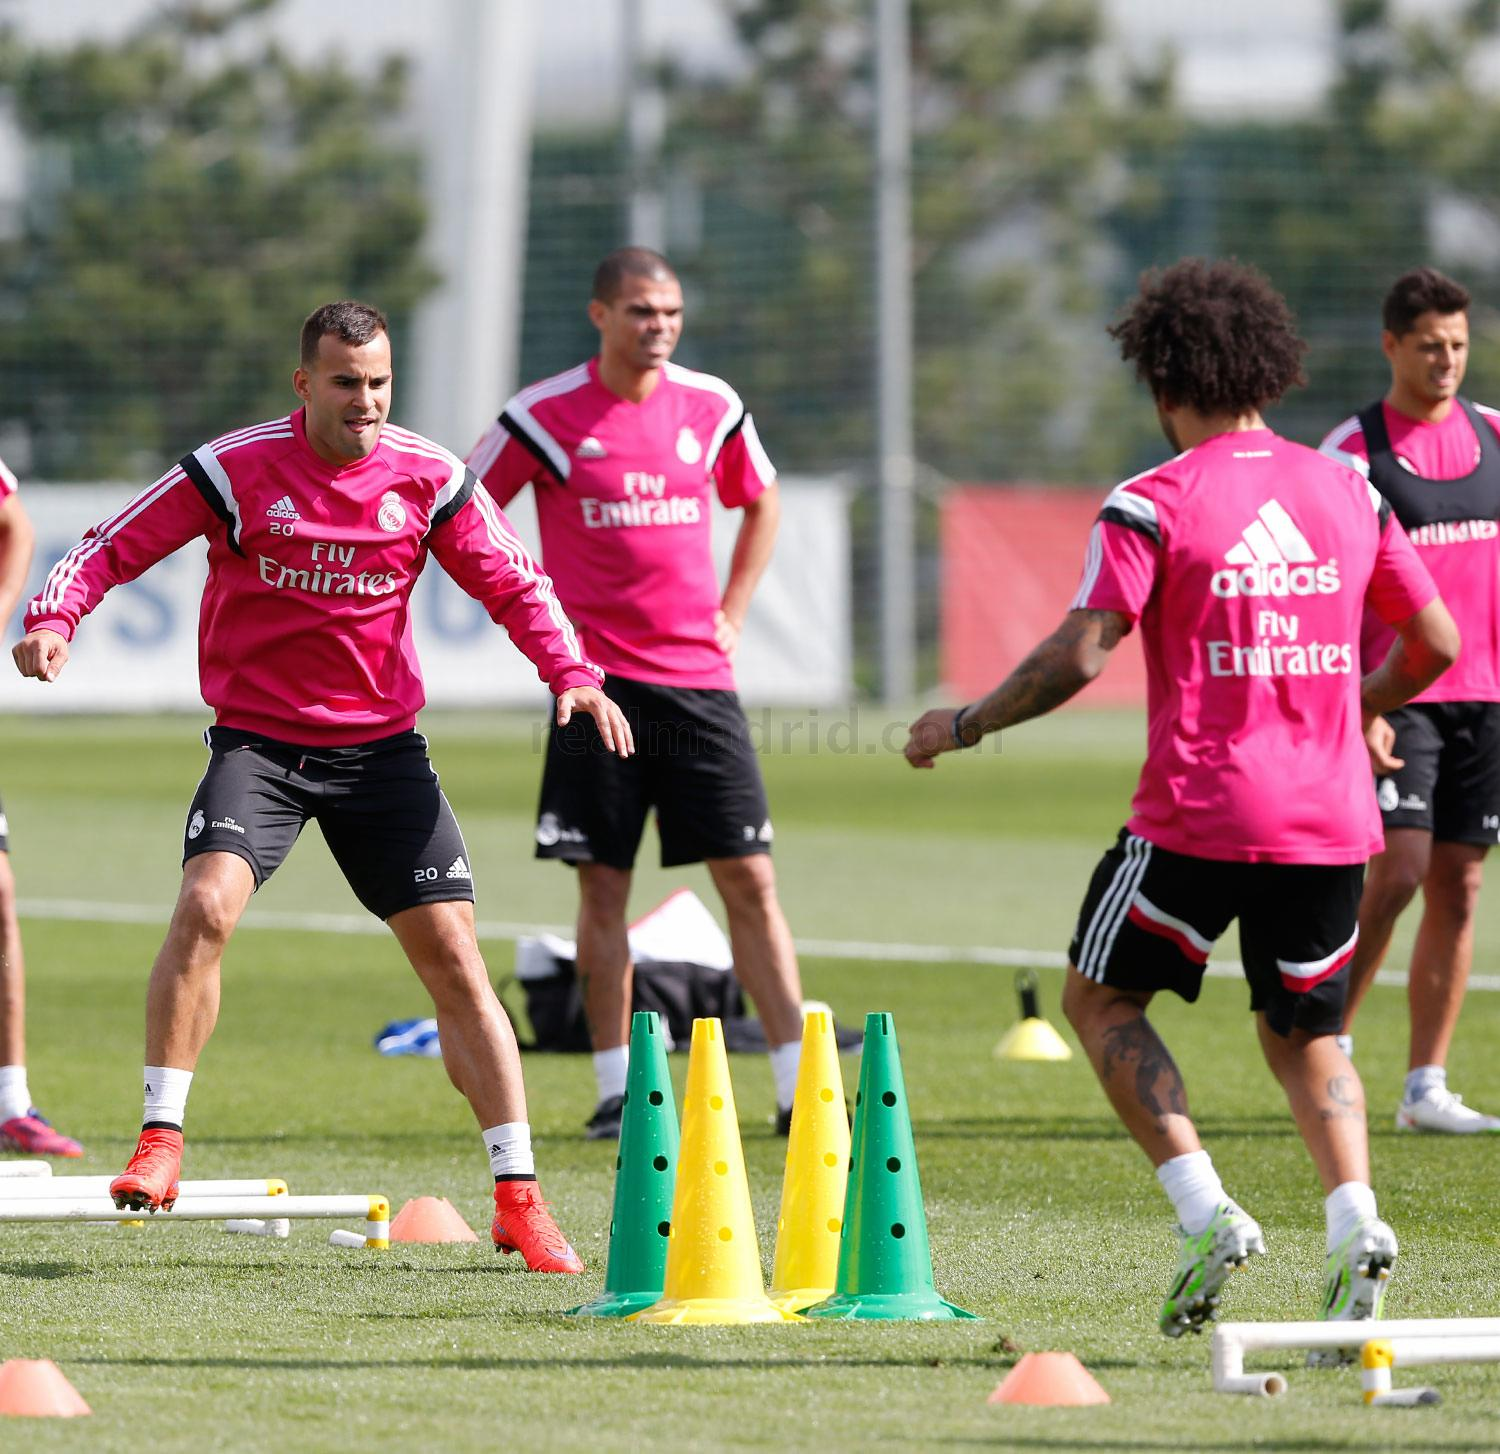 Real Madrid - Entrenamiento del Real Madrid - 17-04-2015